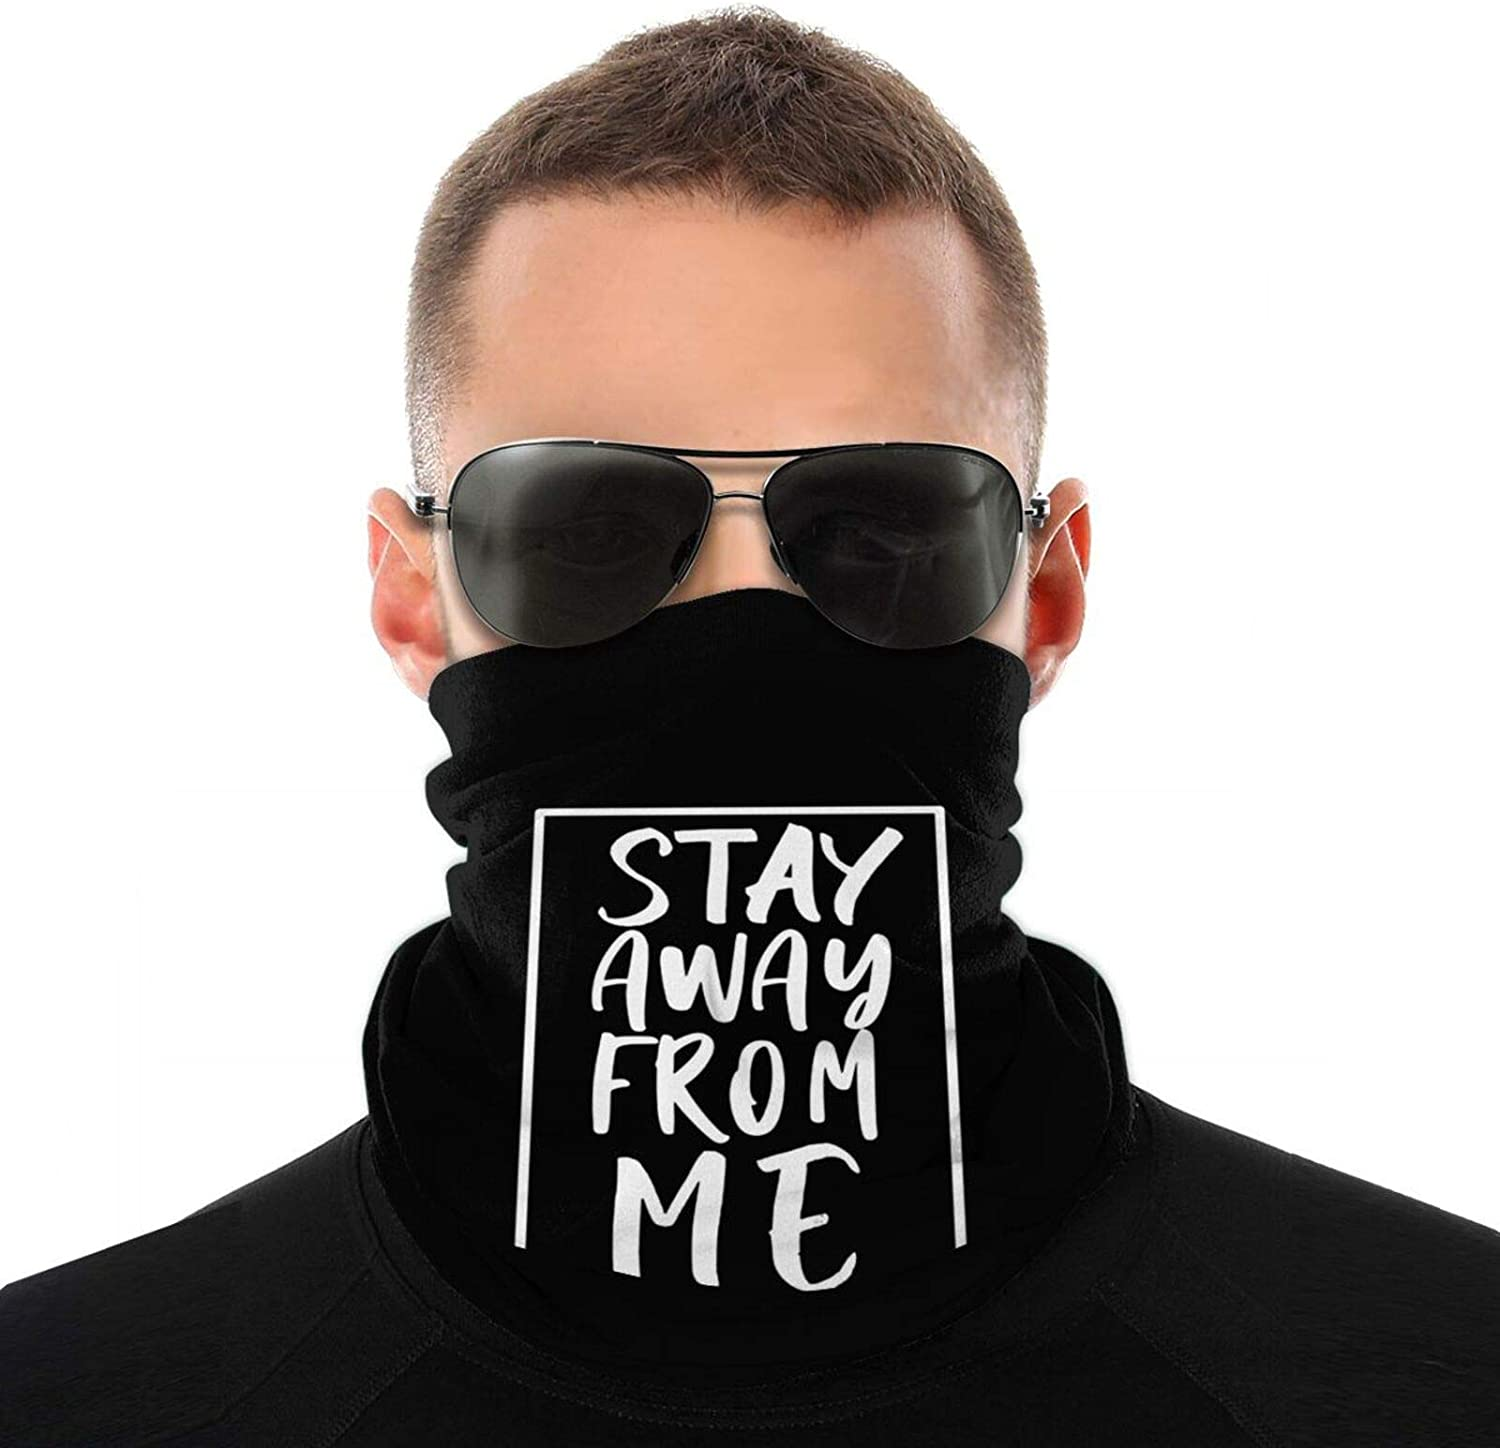 Unisex Winter Stay Away From Me Neck Gaiter Warmer, Soft Face Mask Scarf, Headband For Cold Weather Skiing Cycling Outdoor Sports Gift For Men Women